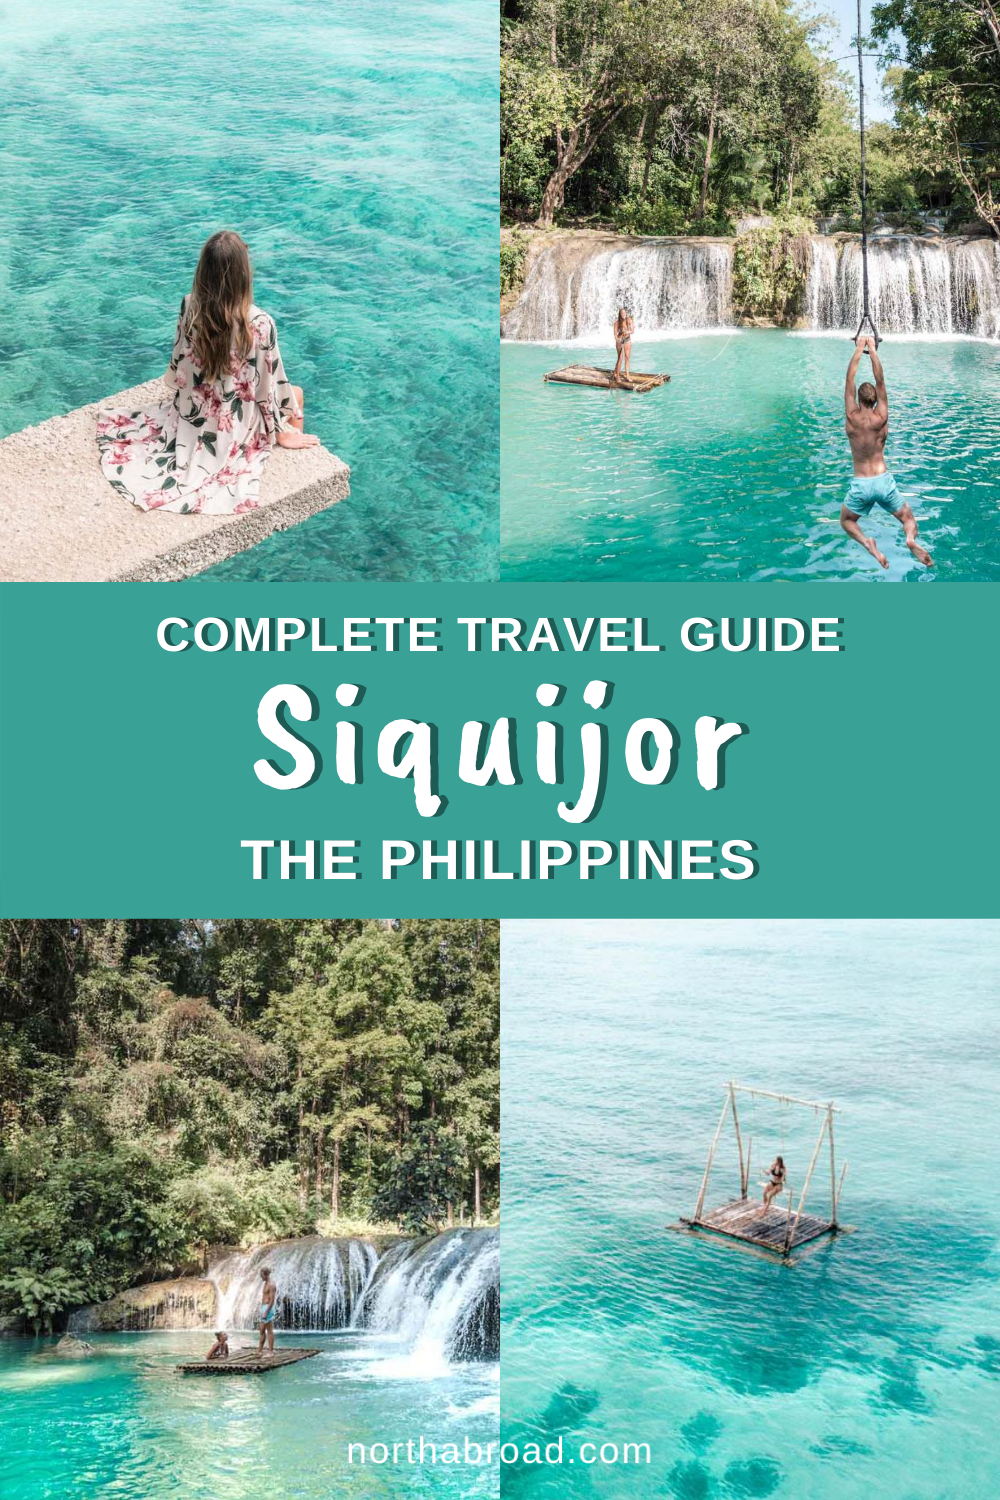 An Extensive Travel Guide to Siquijor: Everything You Need to Know About the Mysterious Island